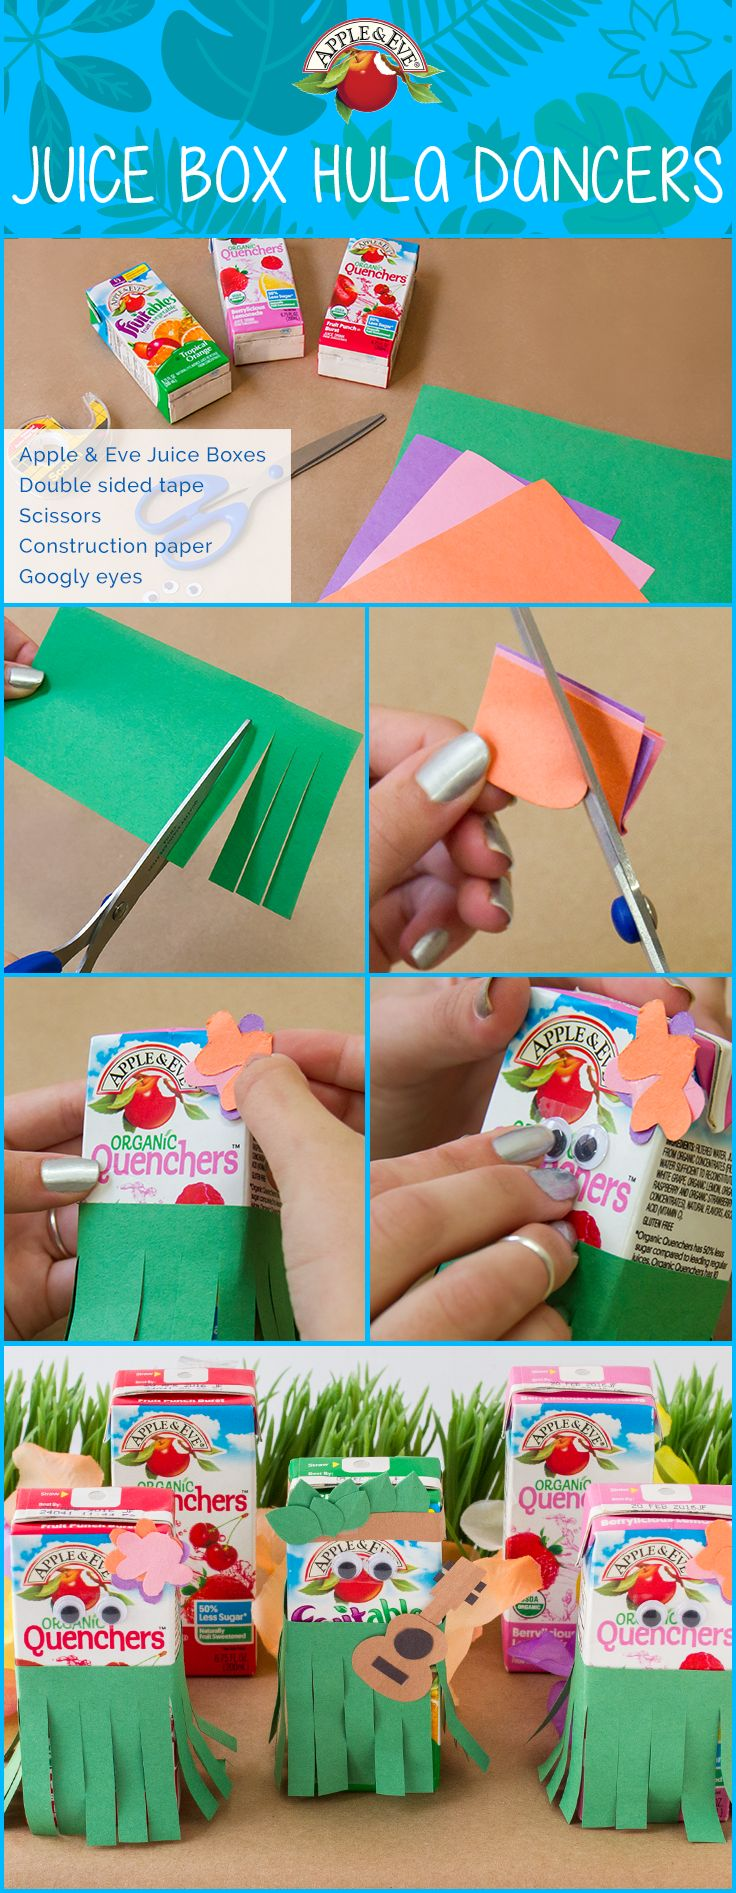 Aloha, fans!  ☀   Enjoy a luau in the comforts of your own home with this craft for the kids.